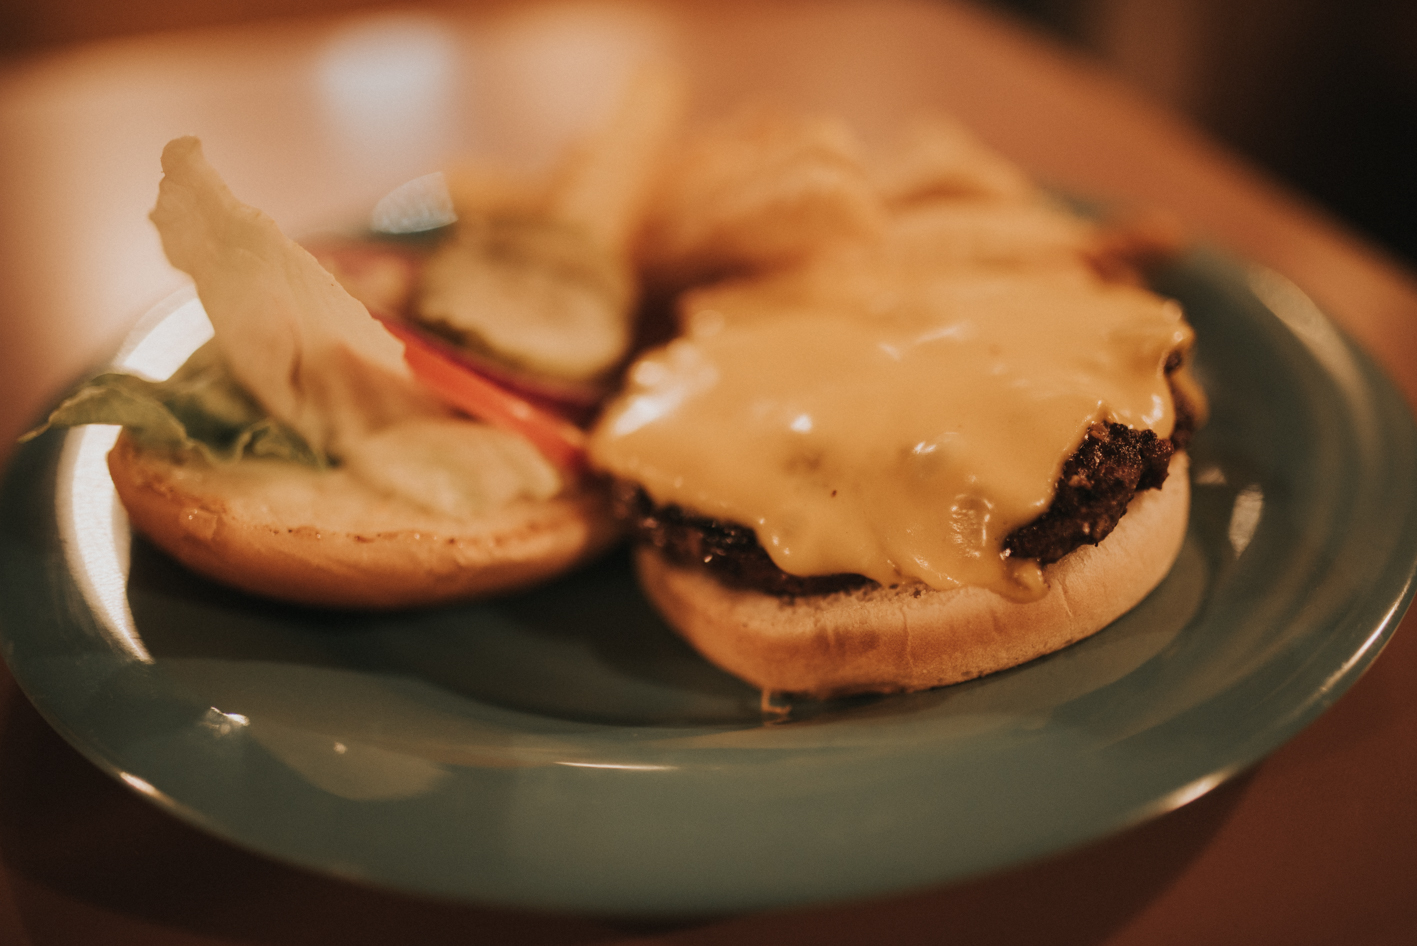 Burger served on a sesame bun with lettuce, mayo, tomato, onion and pickle / Image: Brianna Long // Published: 6.14.17